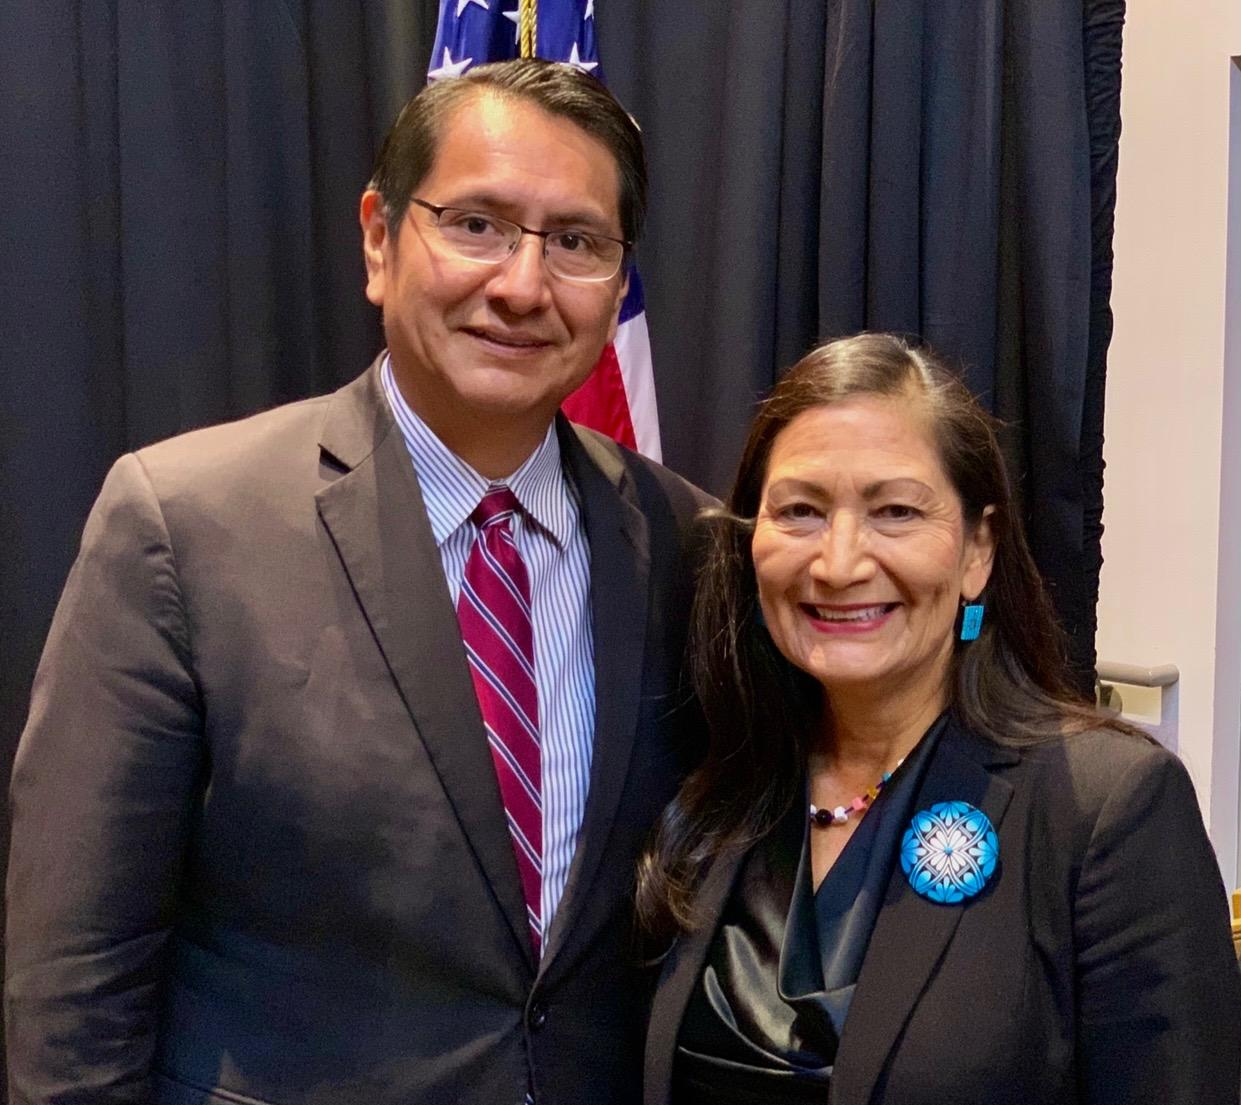 Jonathan Nez and Deb Haaland